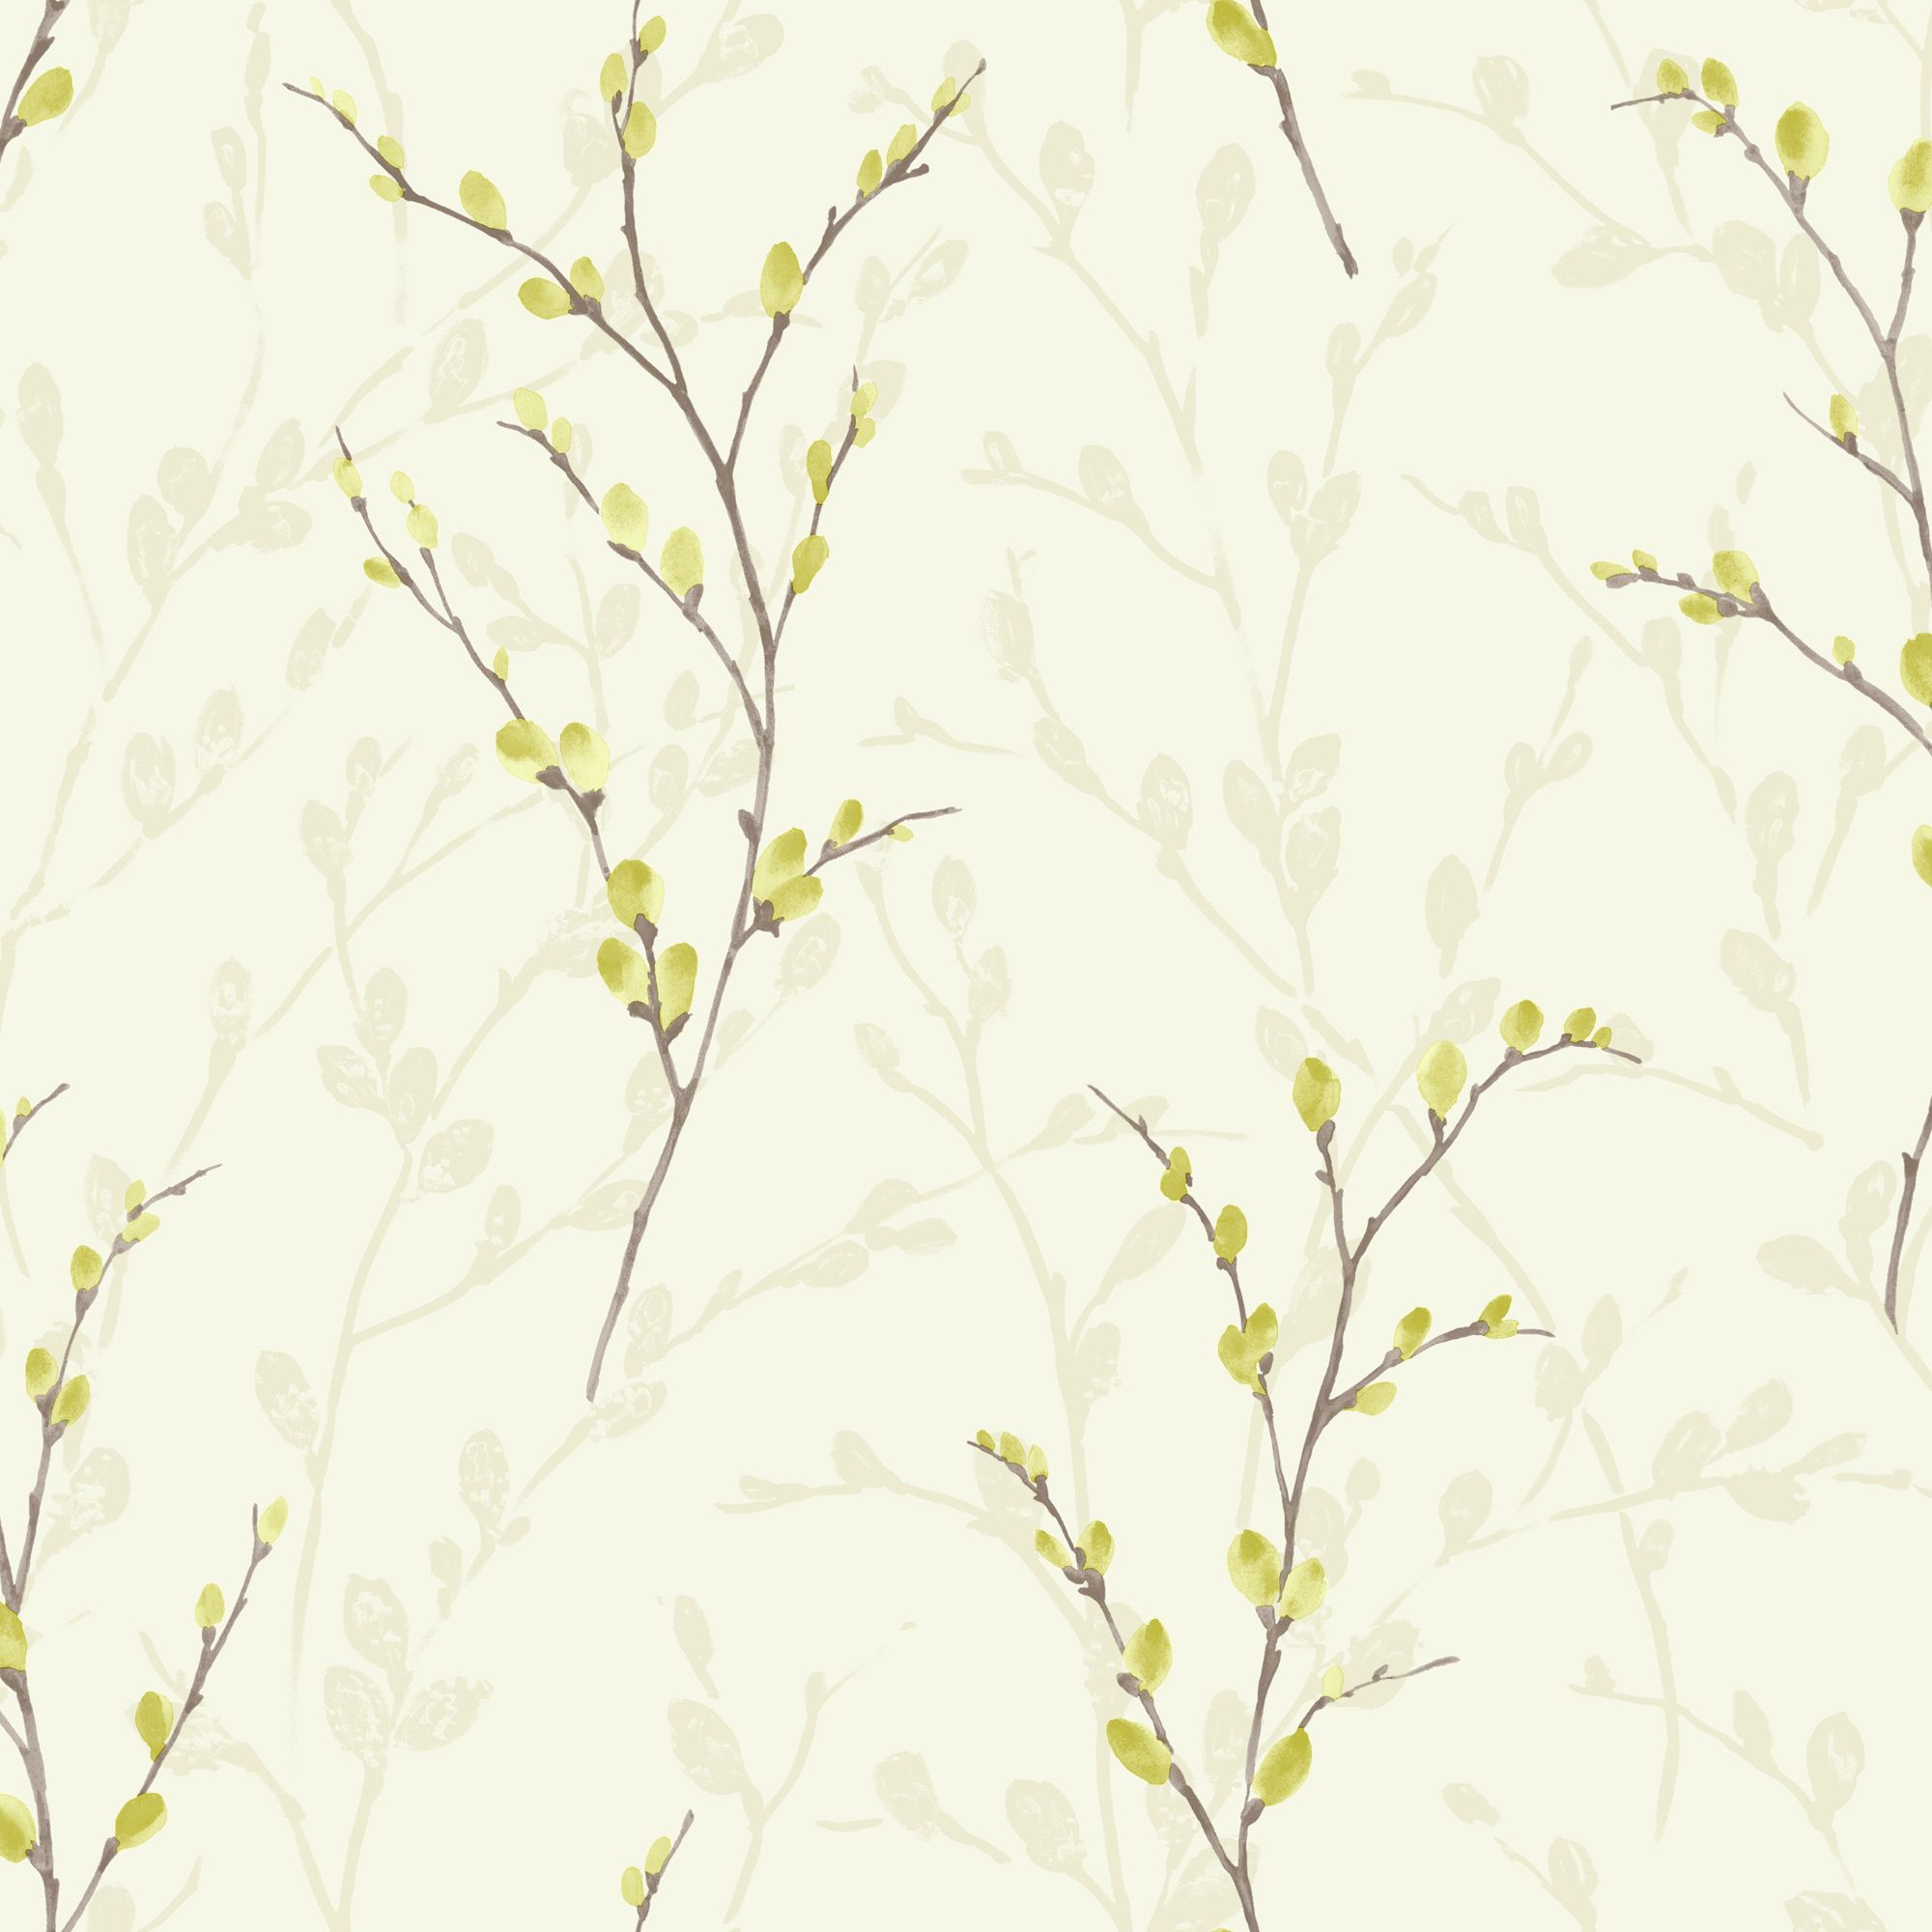 Kitchen Wallpaper At B Q: Arthouse Eco Willow Green Blossom Wallpaper